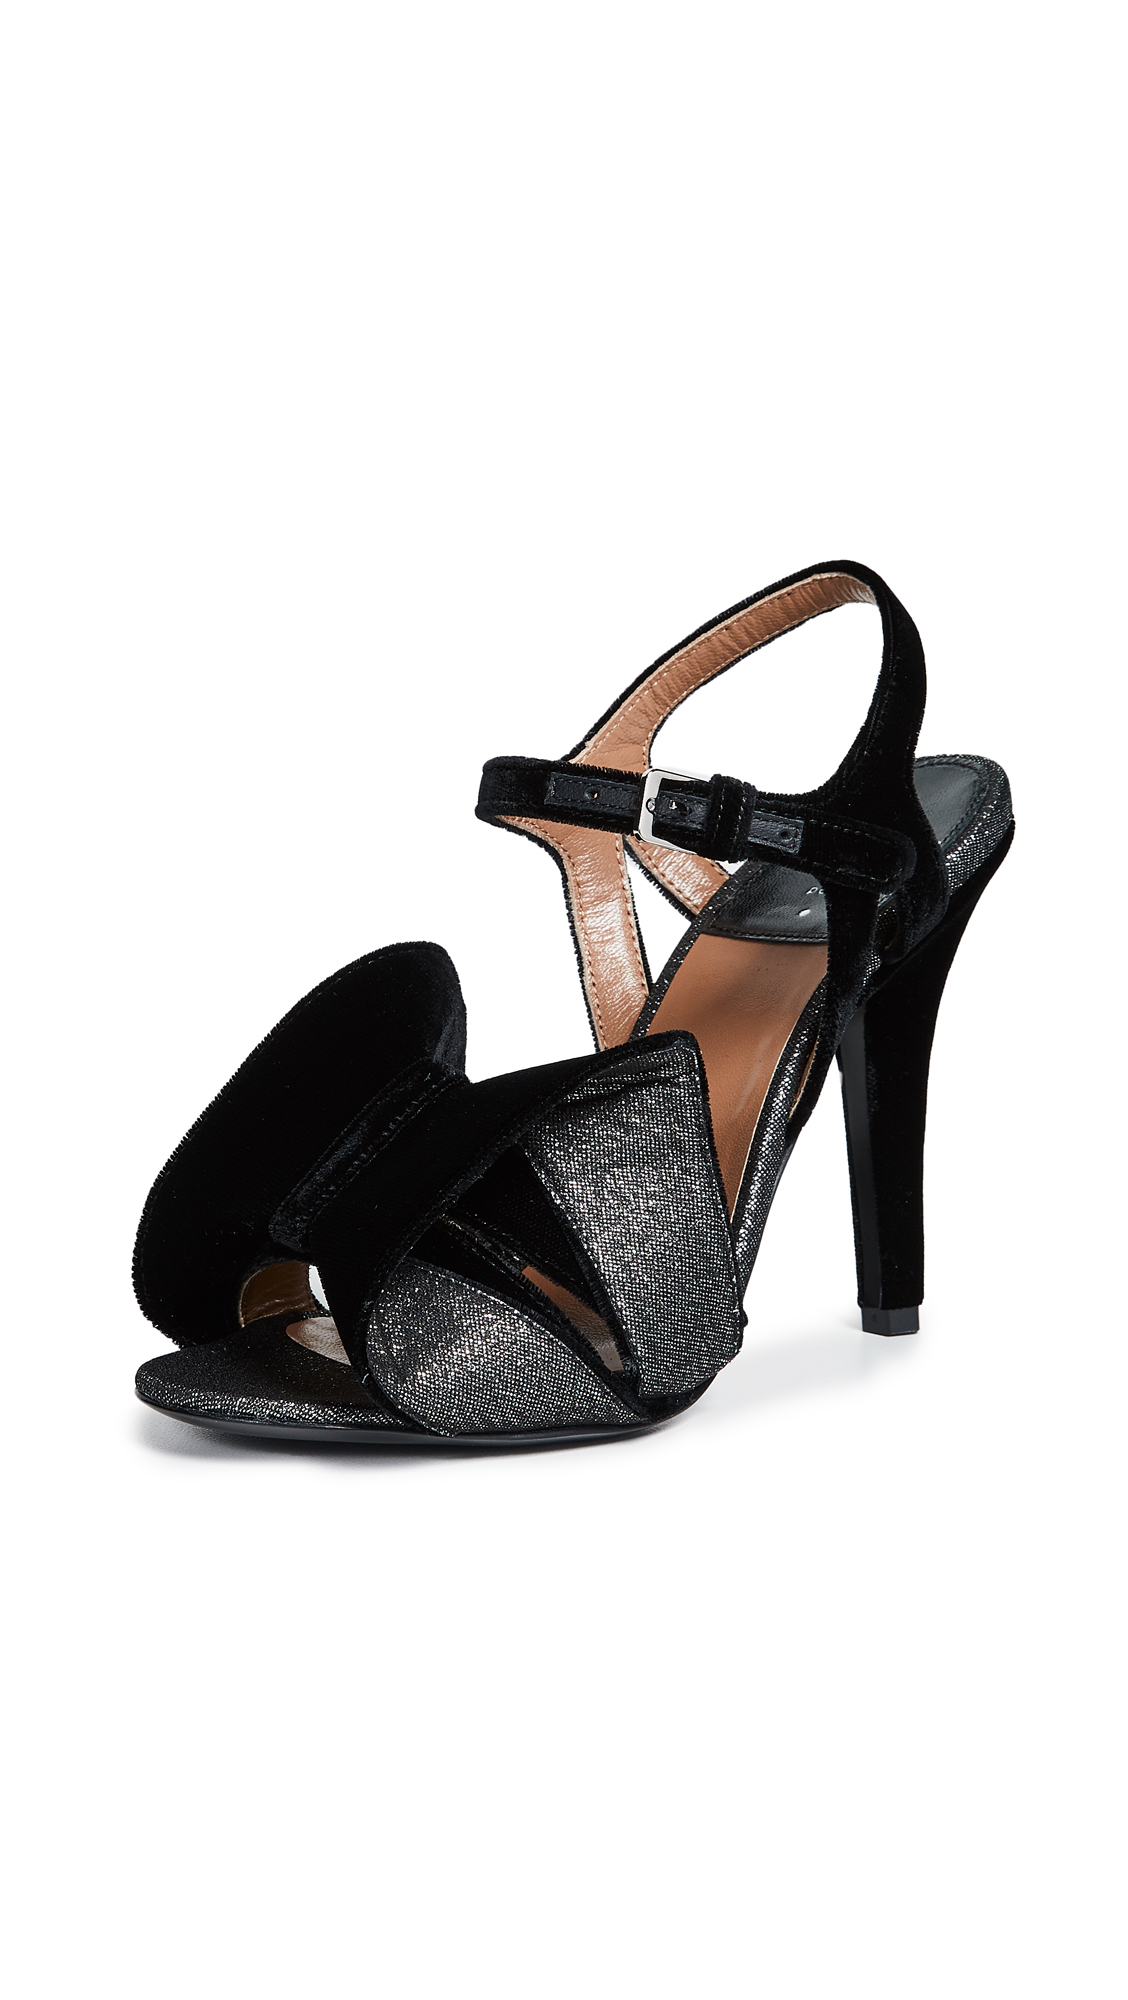 LAURENCE DACADE Women'S Shady Velvet & Metallic High-Heel Sandals in Black